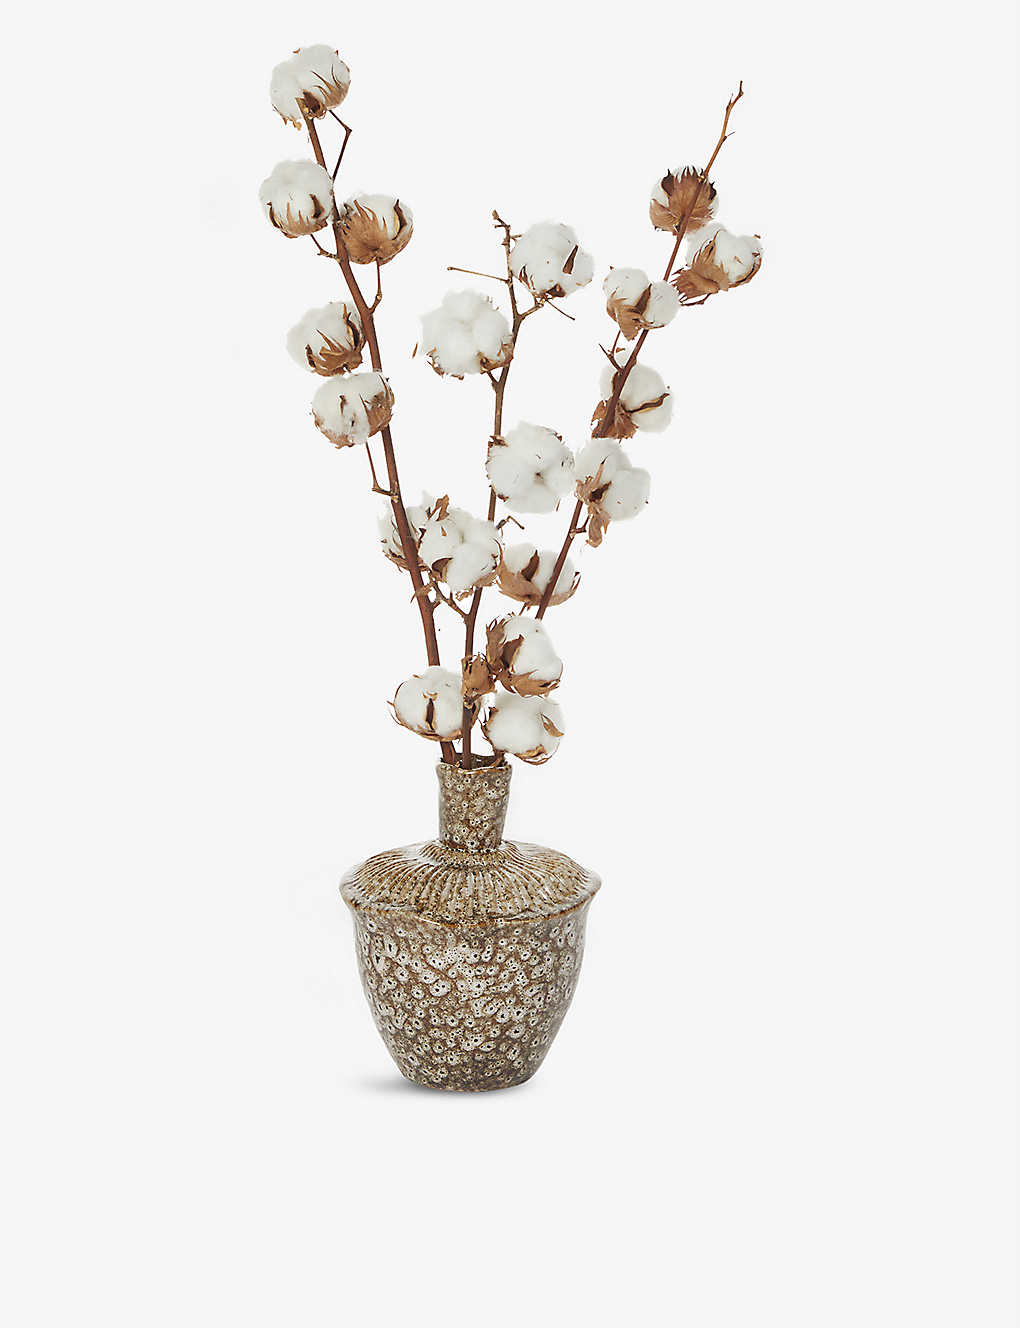 YOUR LONDON FLORIST: Exclusive Pure Cotton dried flowers with vase